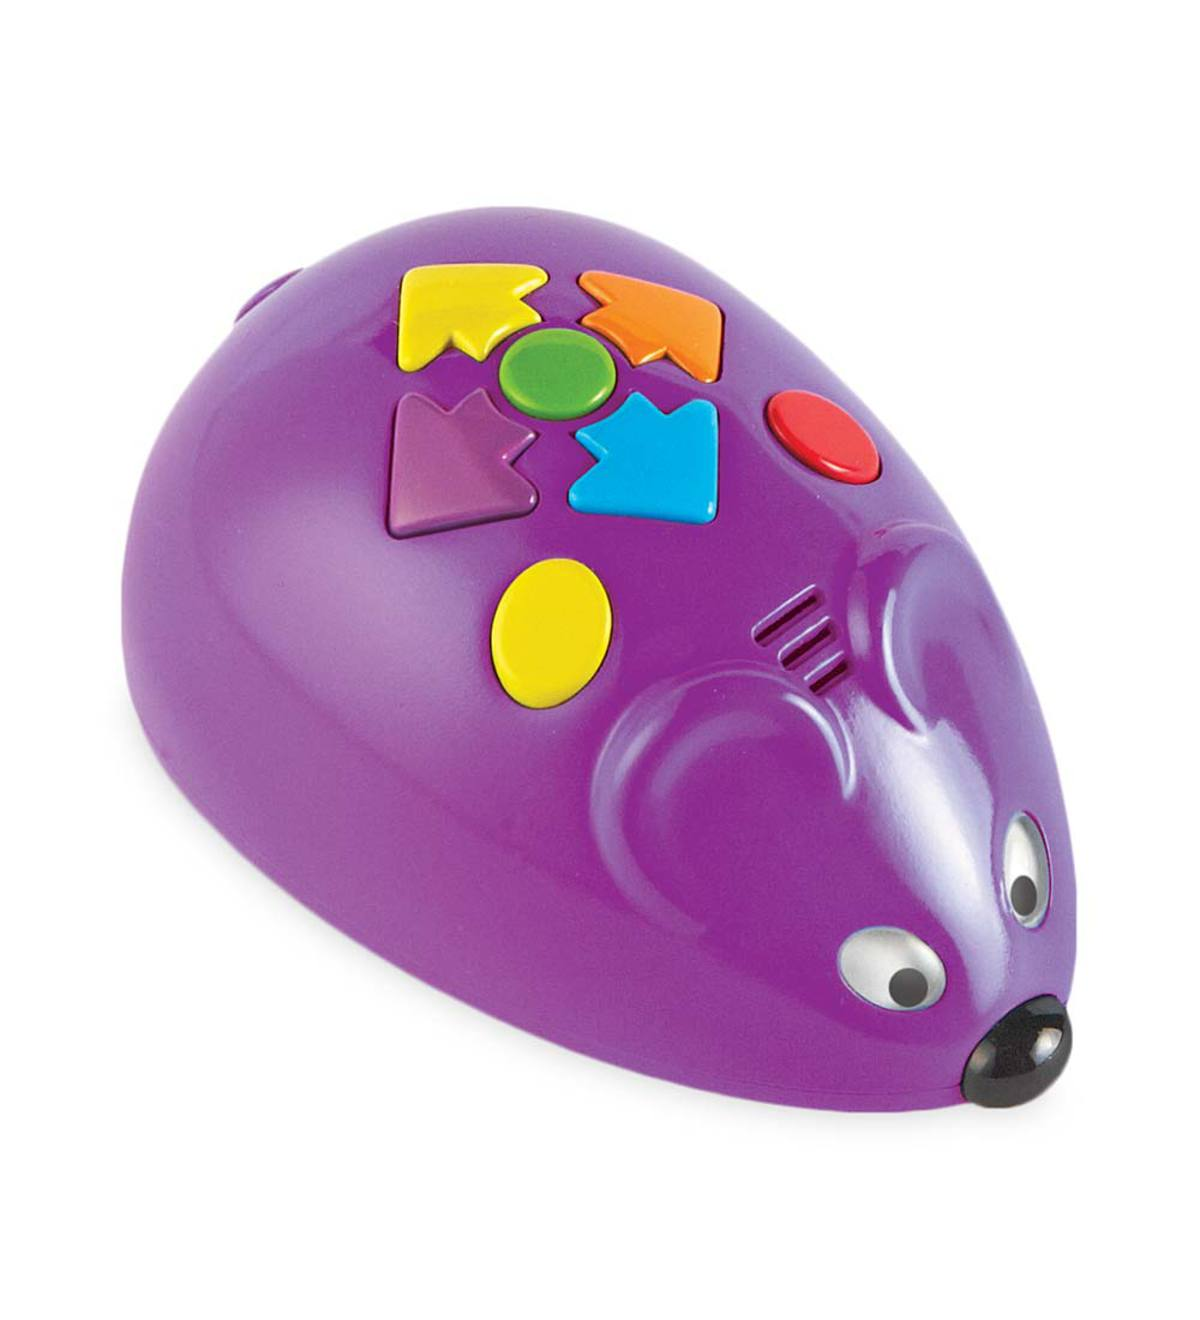 Jack the Programmable Mouse